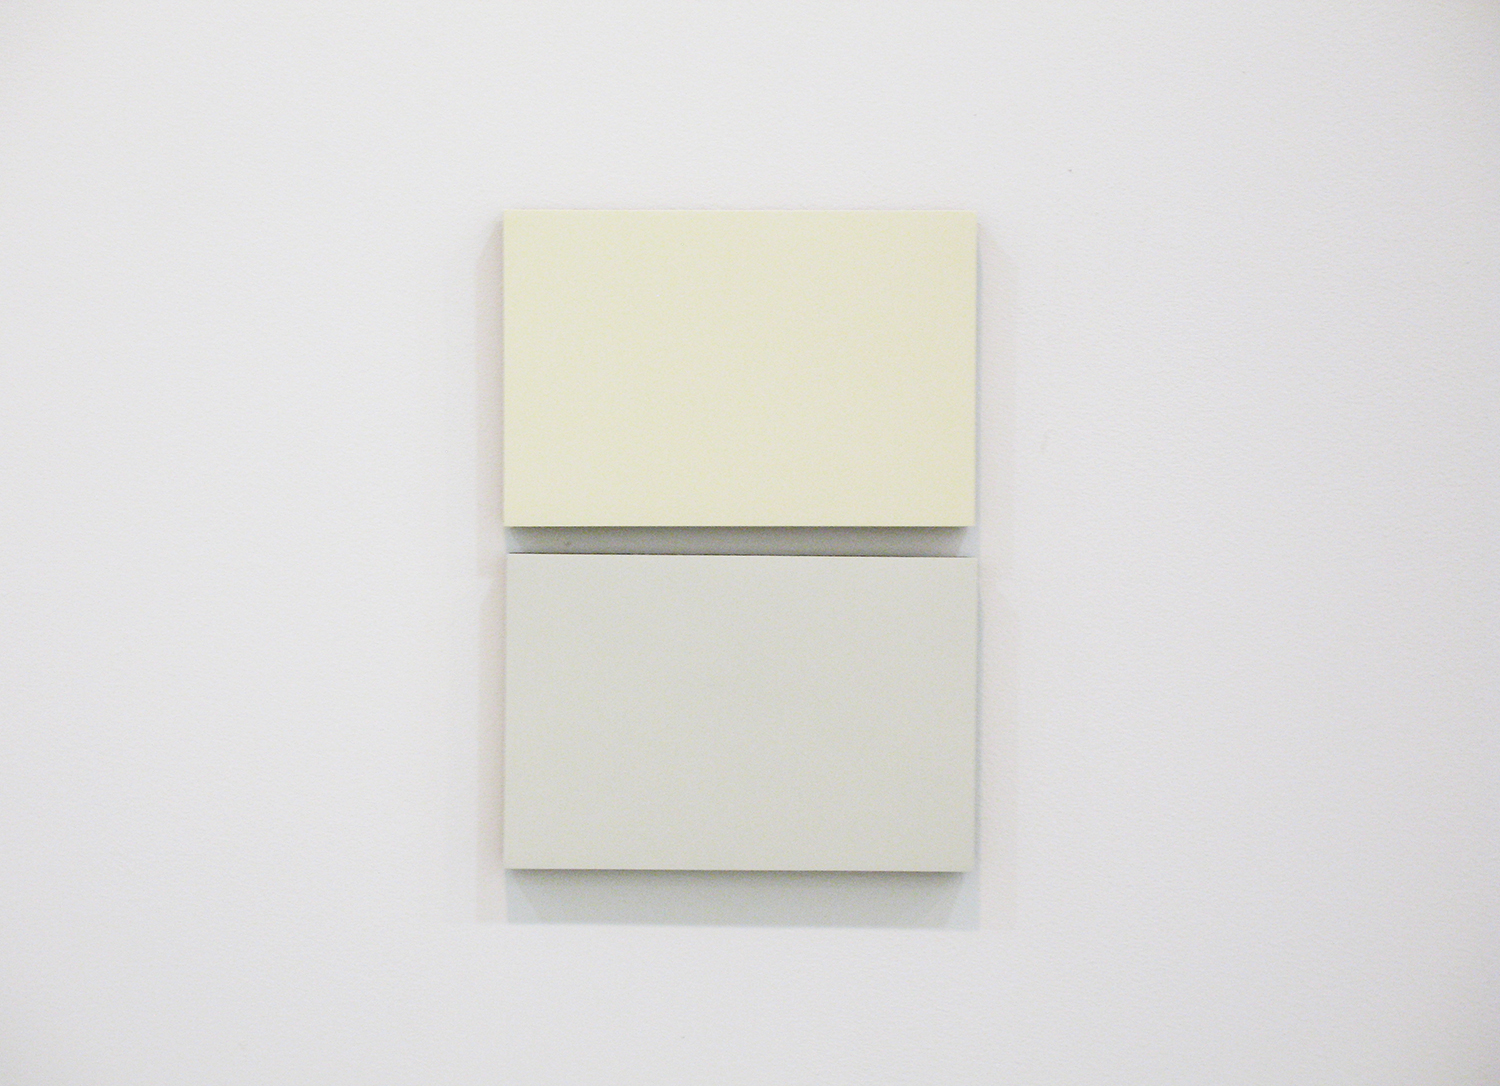 2col-09(ivory & gray)casein, pigment on canvas & aluminum (2 parts, 10 x 15 cm each)